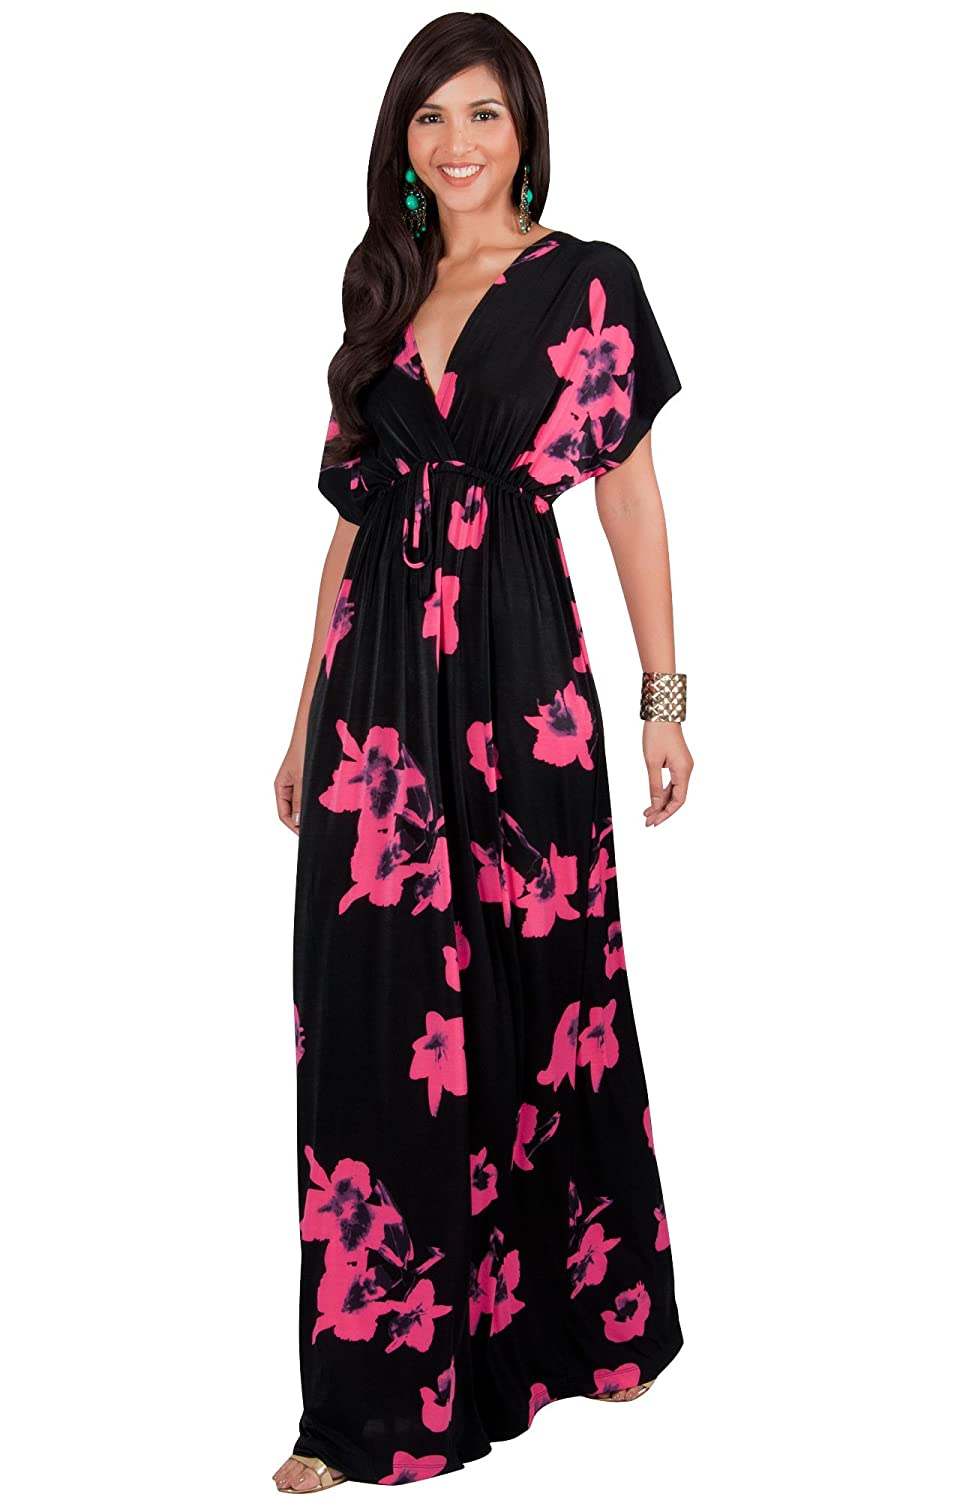 Top 10 wholesale Flowy Maxi Dresses Online - Chinabrands.com